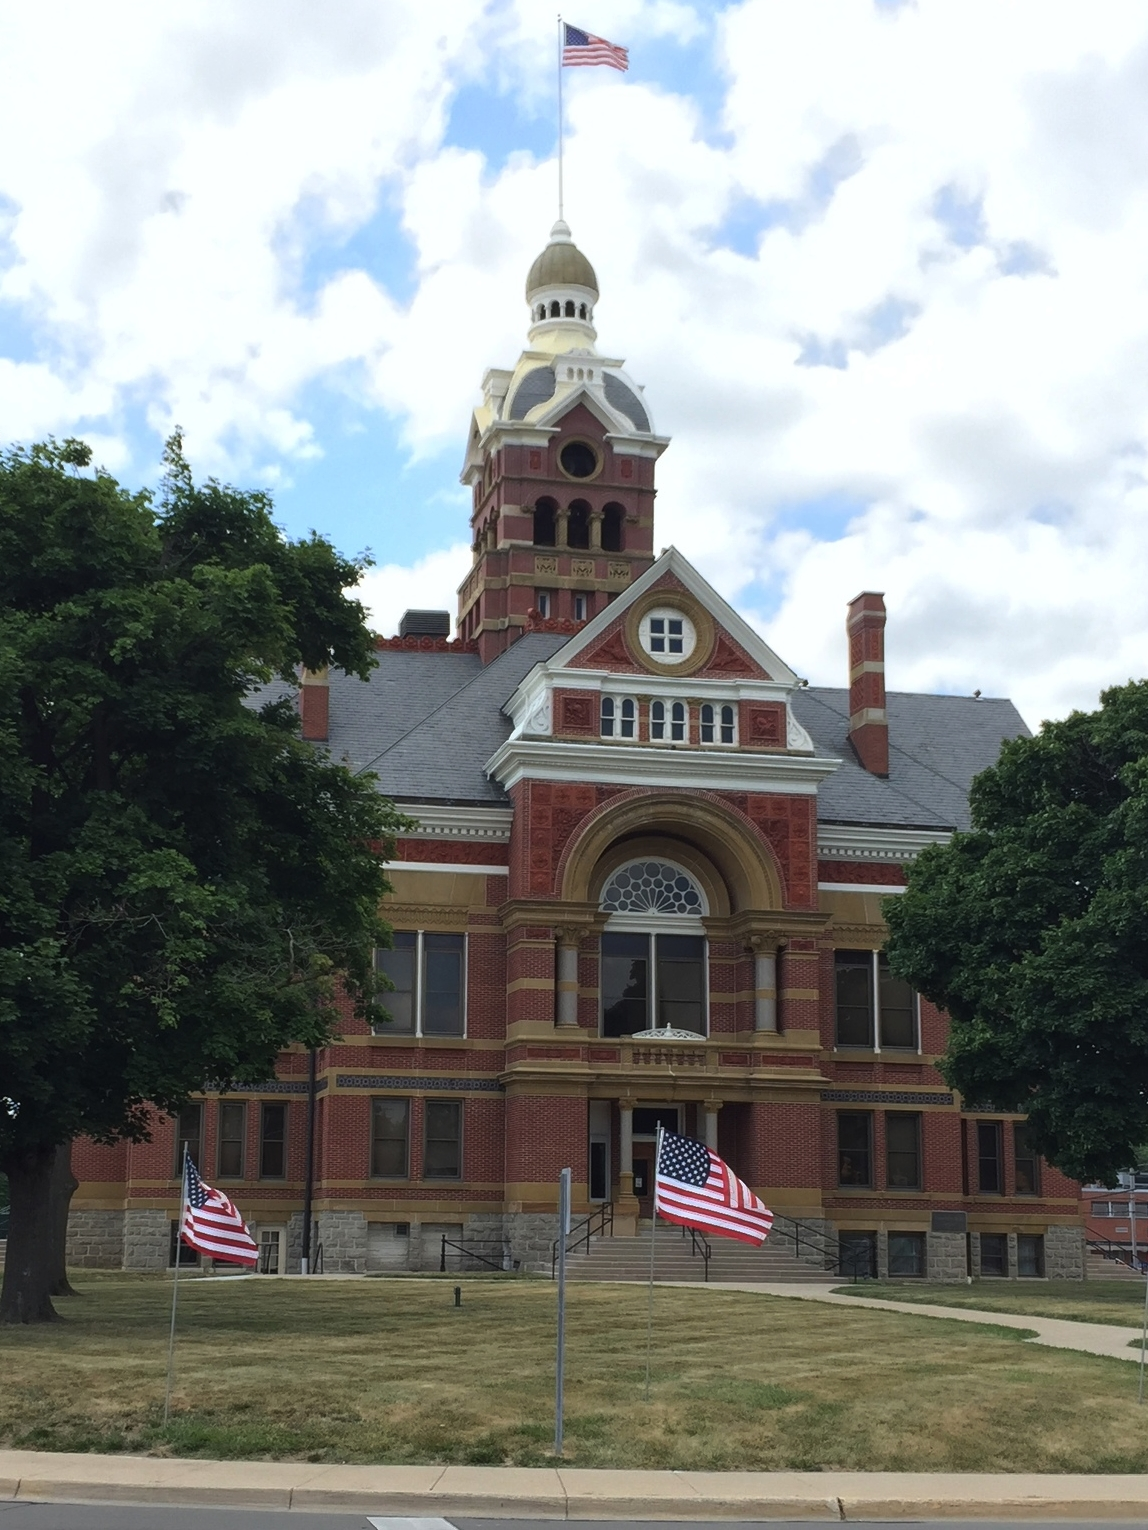 Lenawee County Courthouse, 309 North Main Street, 1885, Edward O. Fallis architect